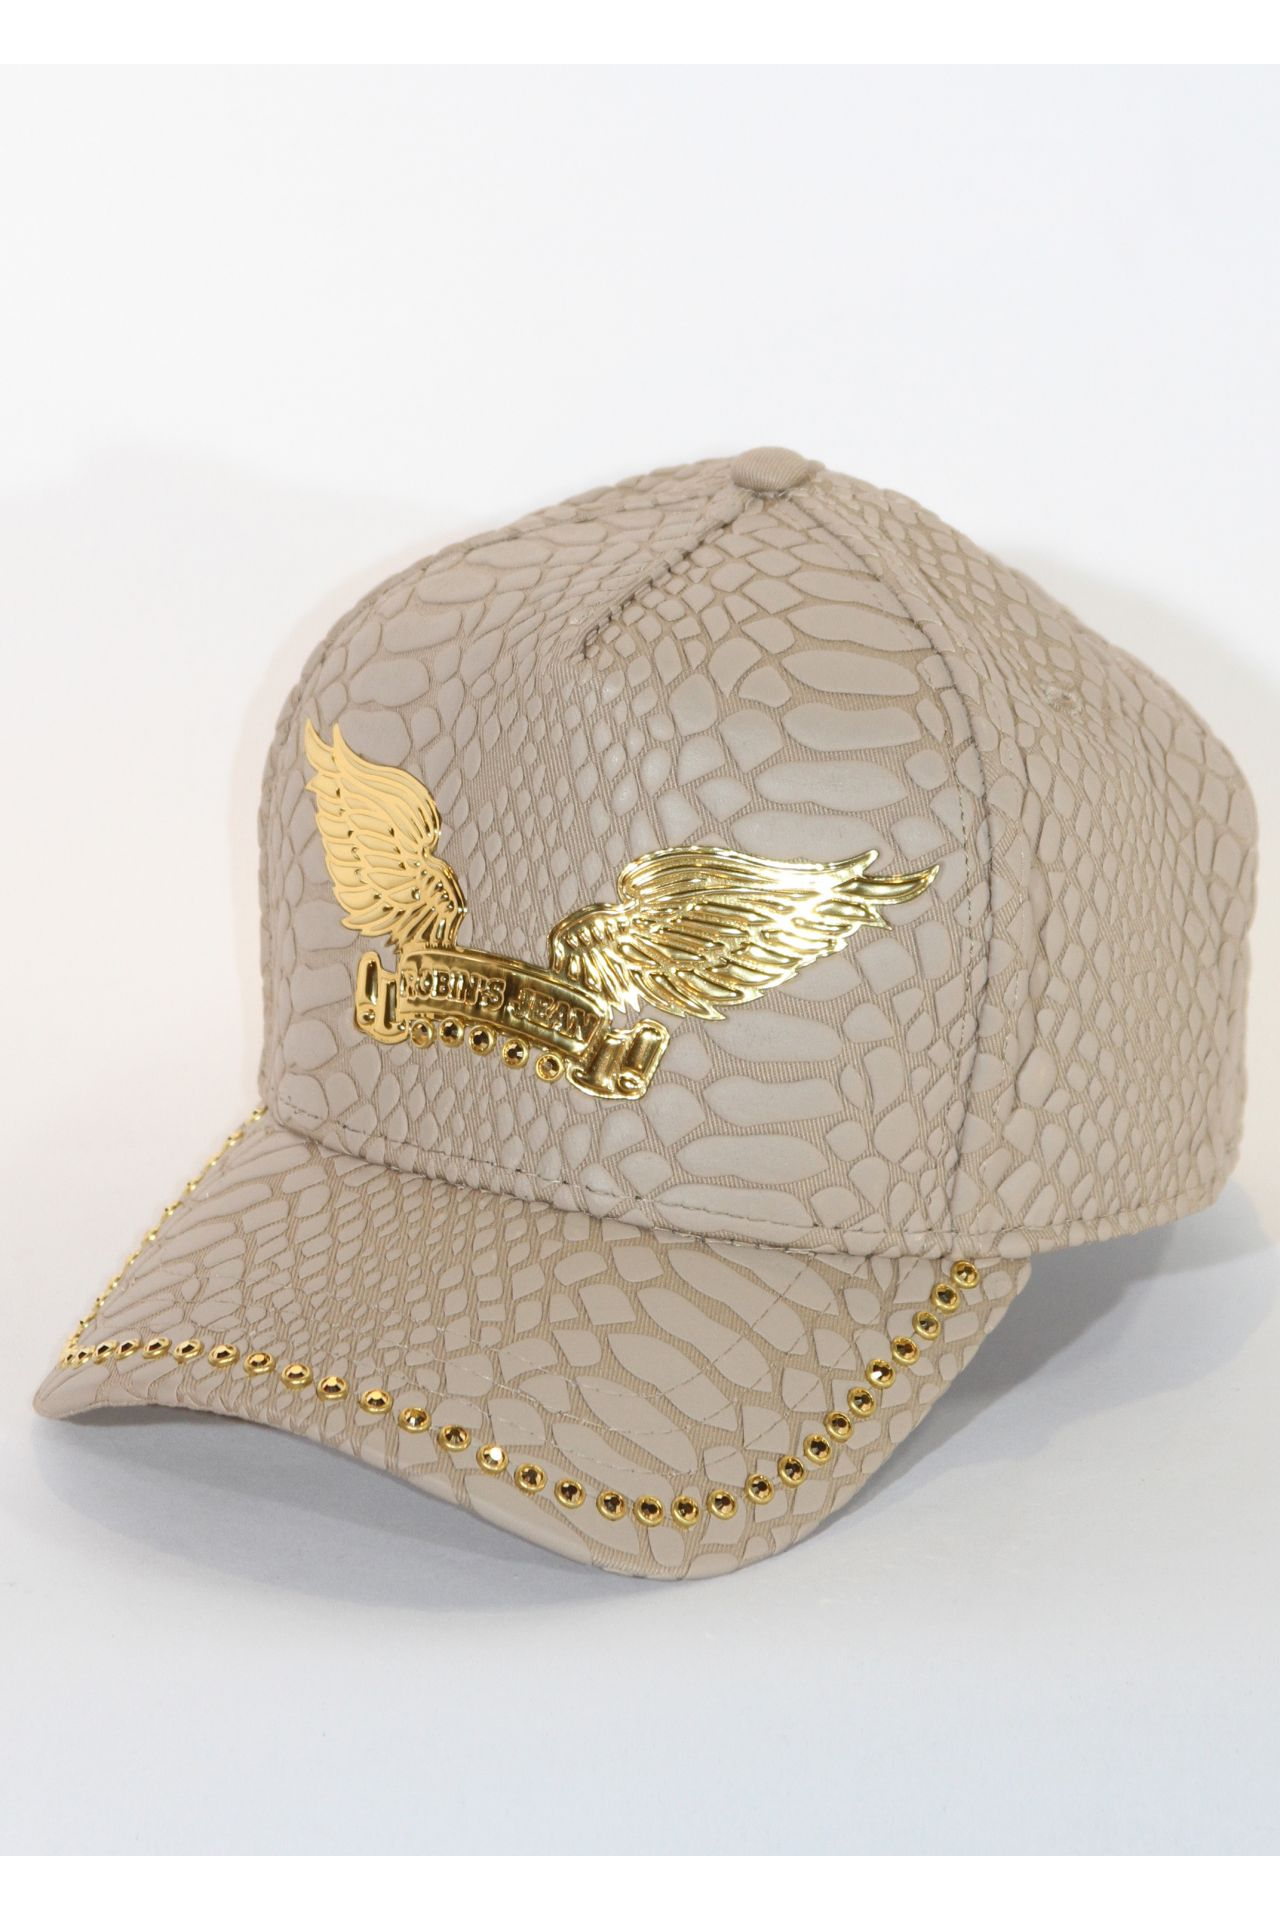 CRACKLE HAT IN KHAKI WITH GOLD SW